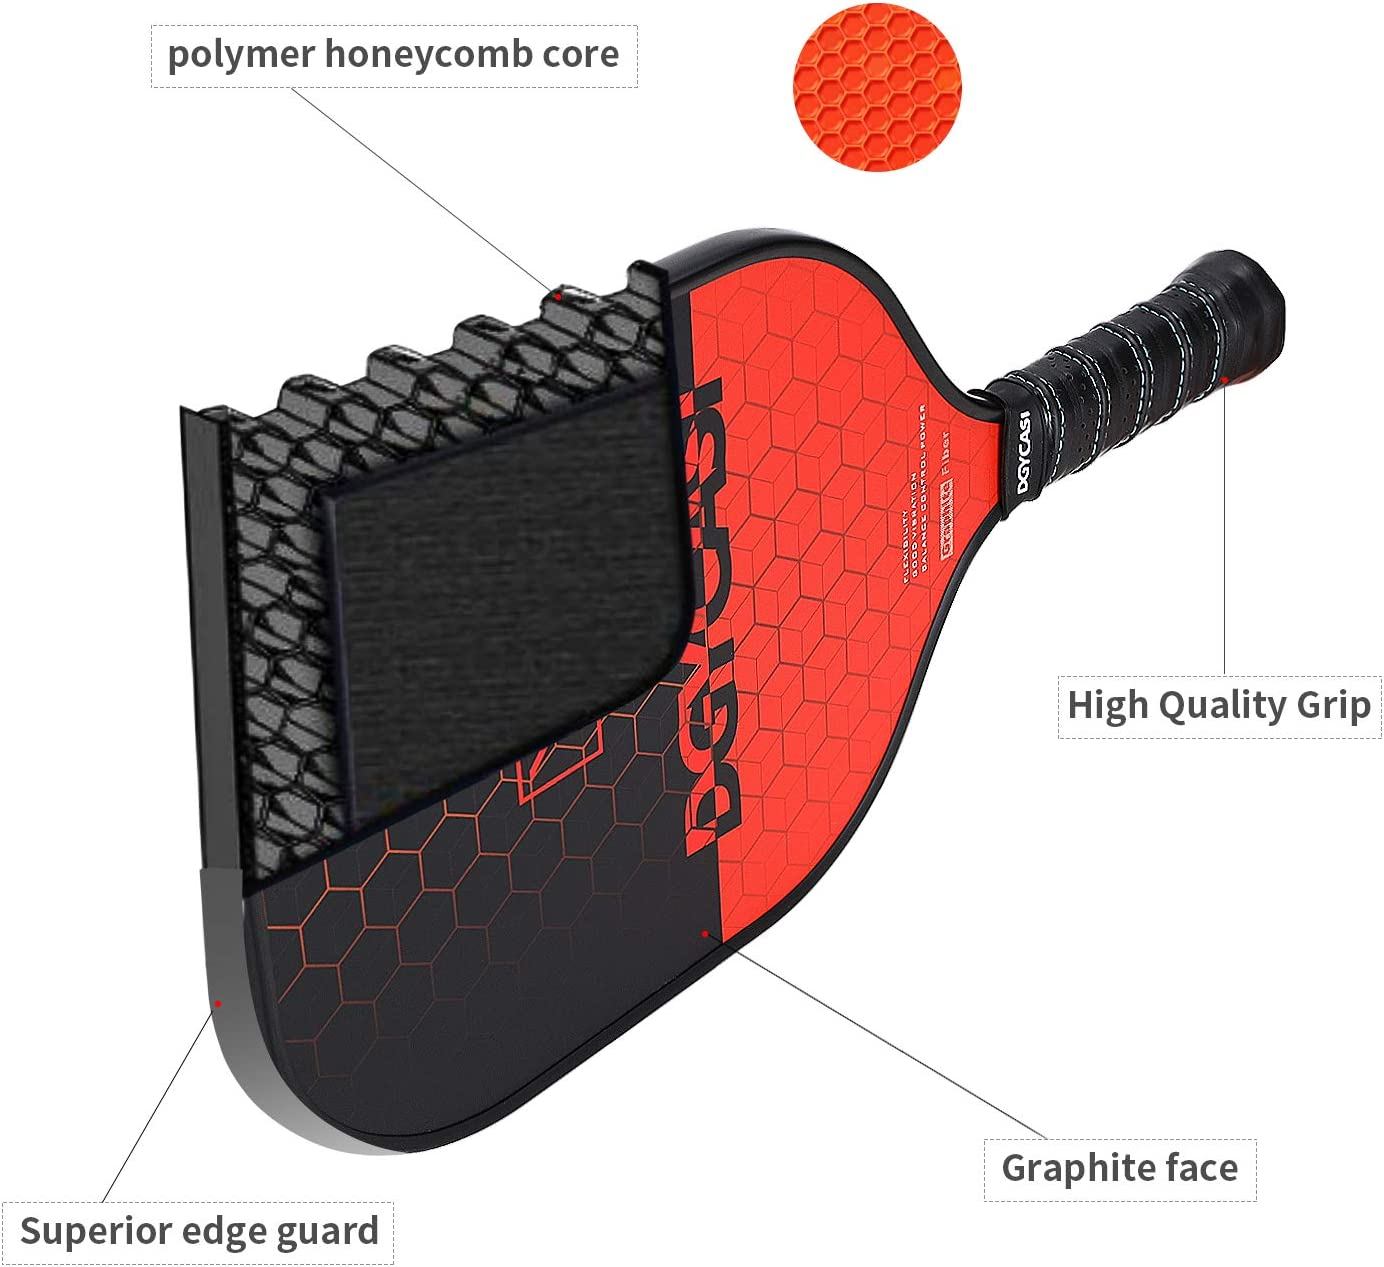 Graphite Pickleball Paddle Set Lightweight Graphite Face Honeycomb Composite Core Paddles Low Edge Guard Sets of 2 Including Racket Bag and 4 Balls,7.97OZ-Table Tennis Racket